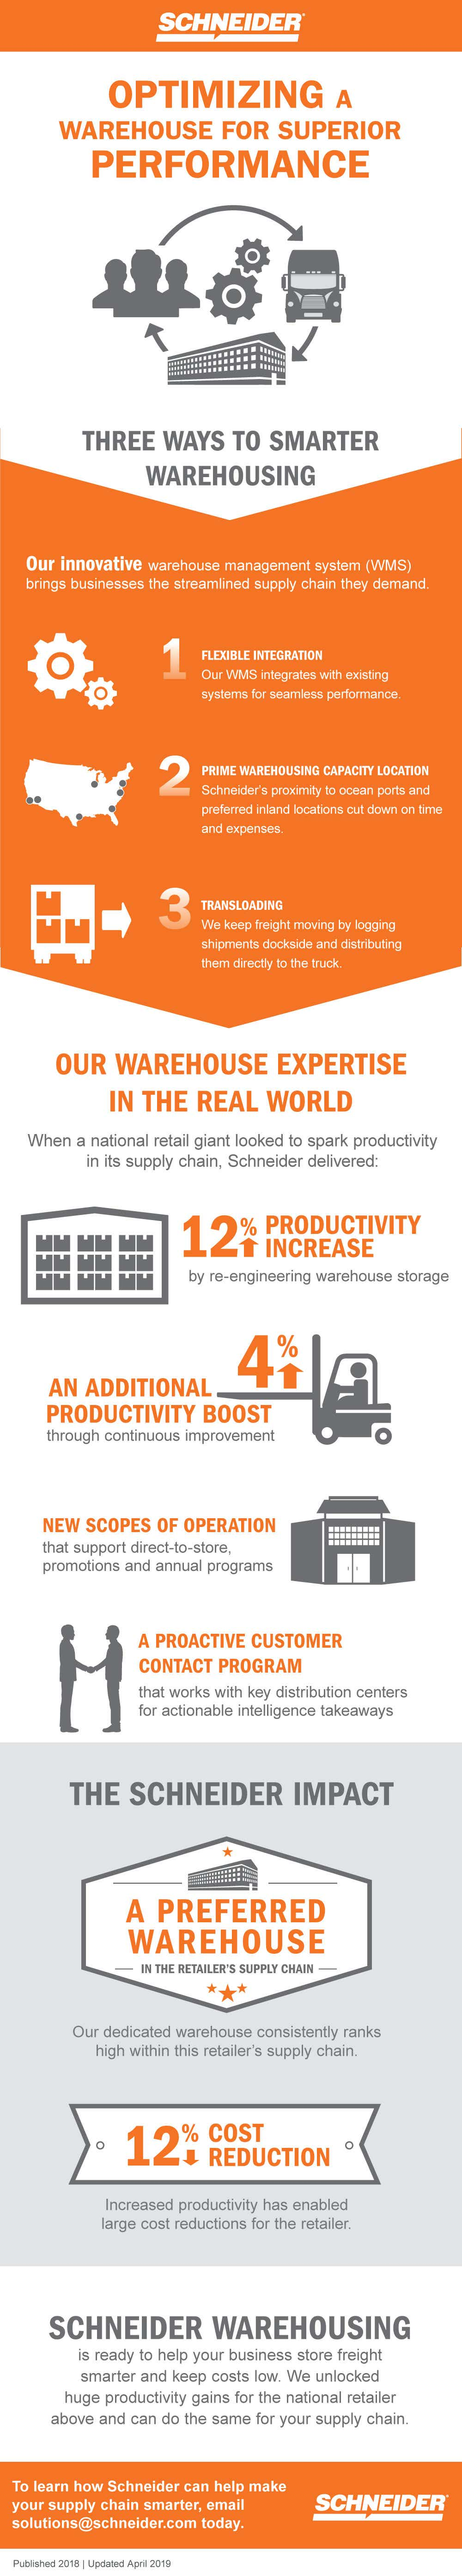 Optimizing A Warehouse For Superior Performance Infographic